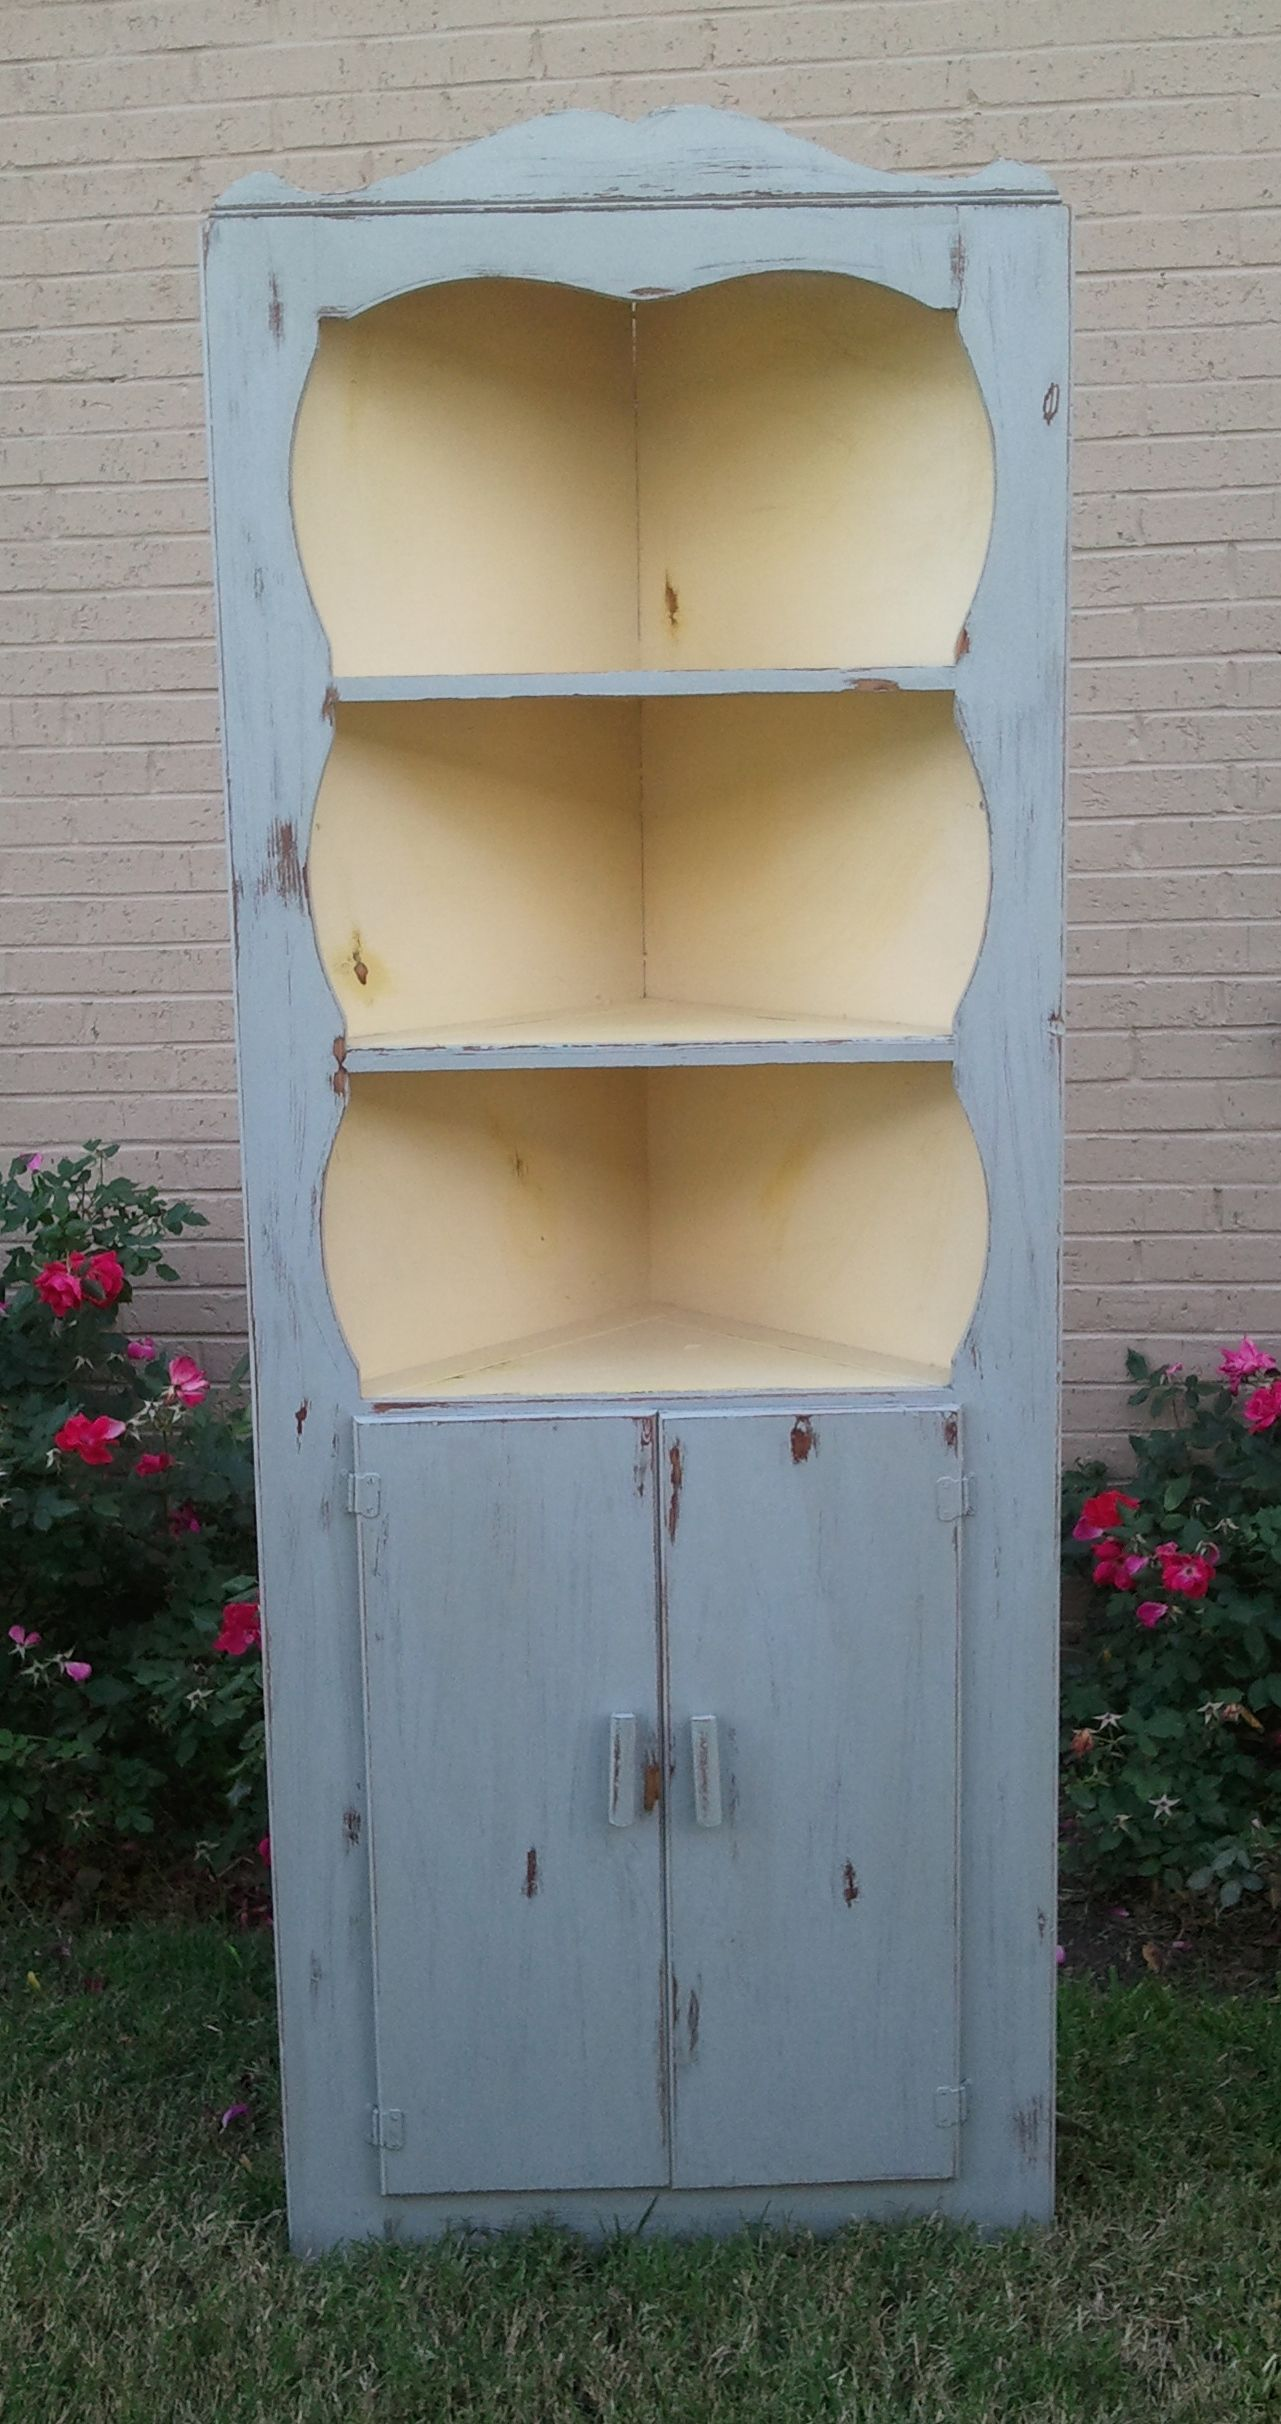 Vintage Corner Cabinet Vintage Small Country Corner Cabinet Painted By Onlinechic On Etsy